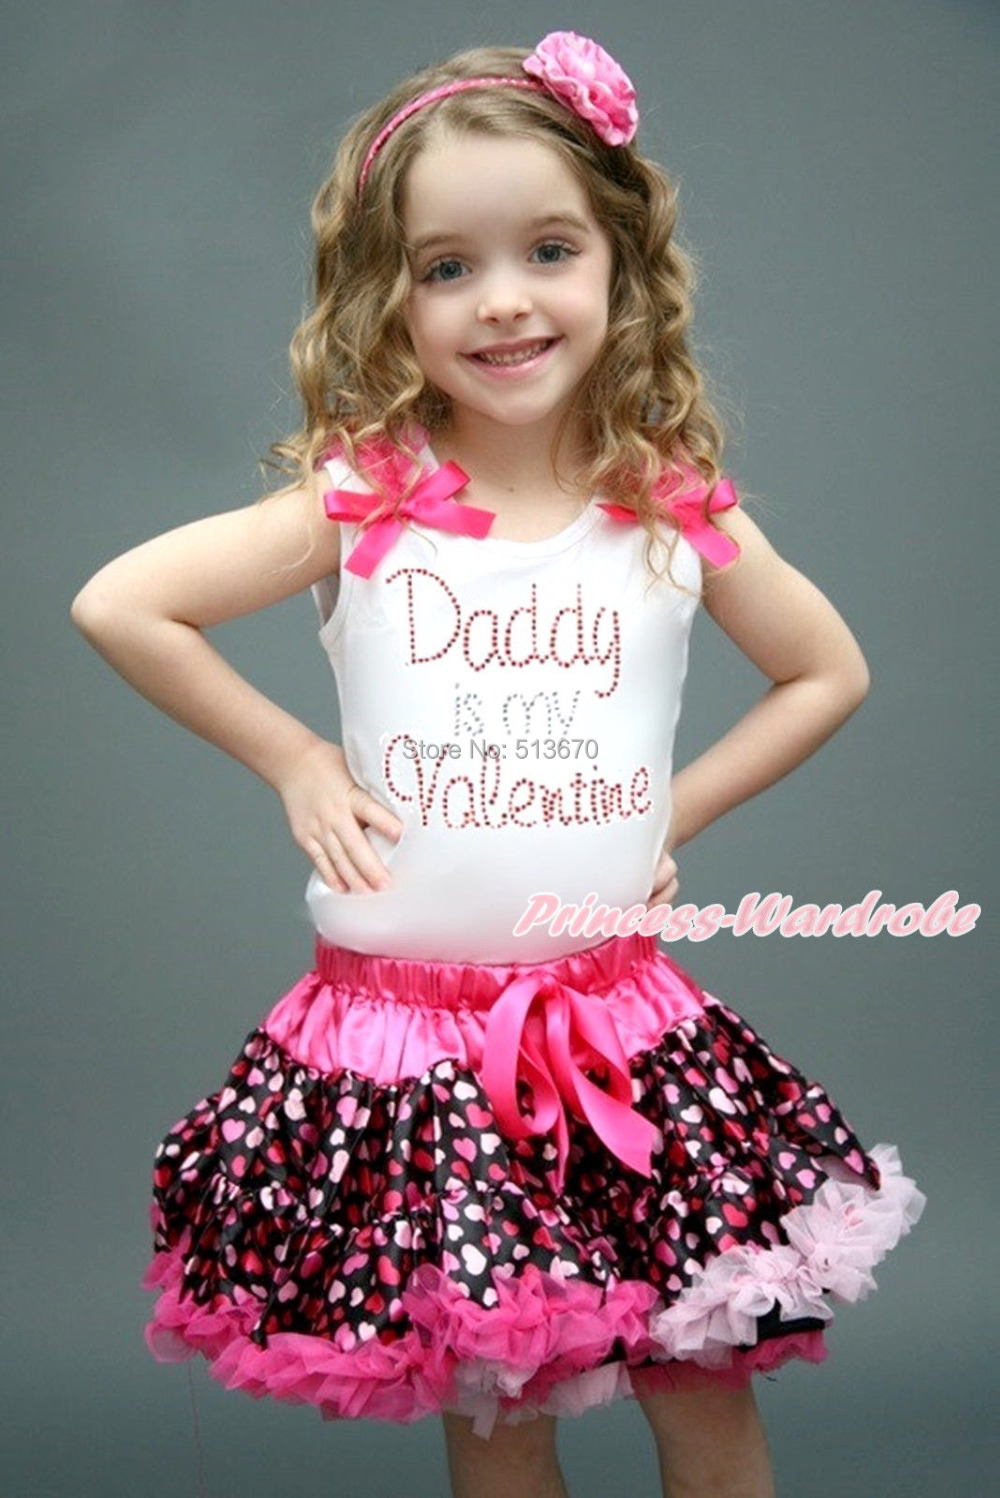 Rhinestone Daddy Is My Valentine White Top Hot Pink Heart Pettiskirt Set 1-8Year MAPSA0164 intex 29022 59953